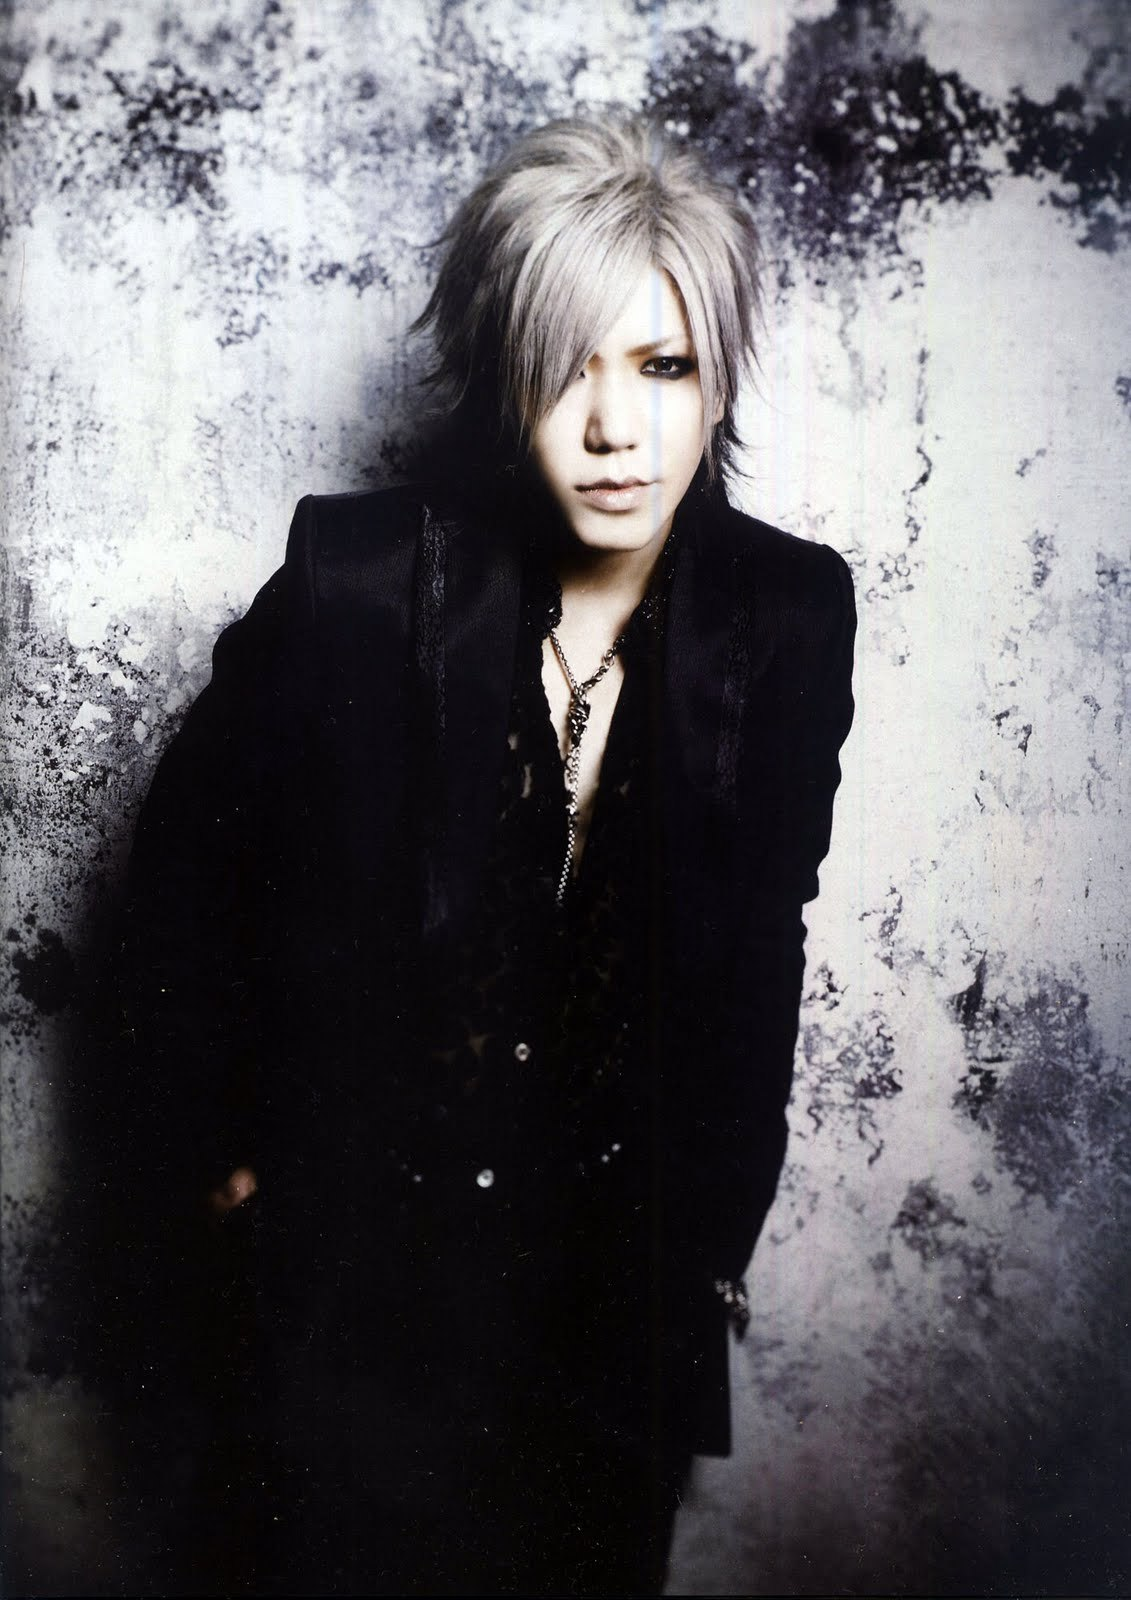 Aoi Guitar The Gazette Photo 26159046 Fanpop